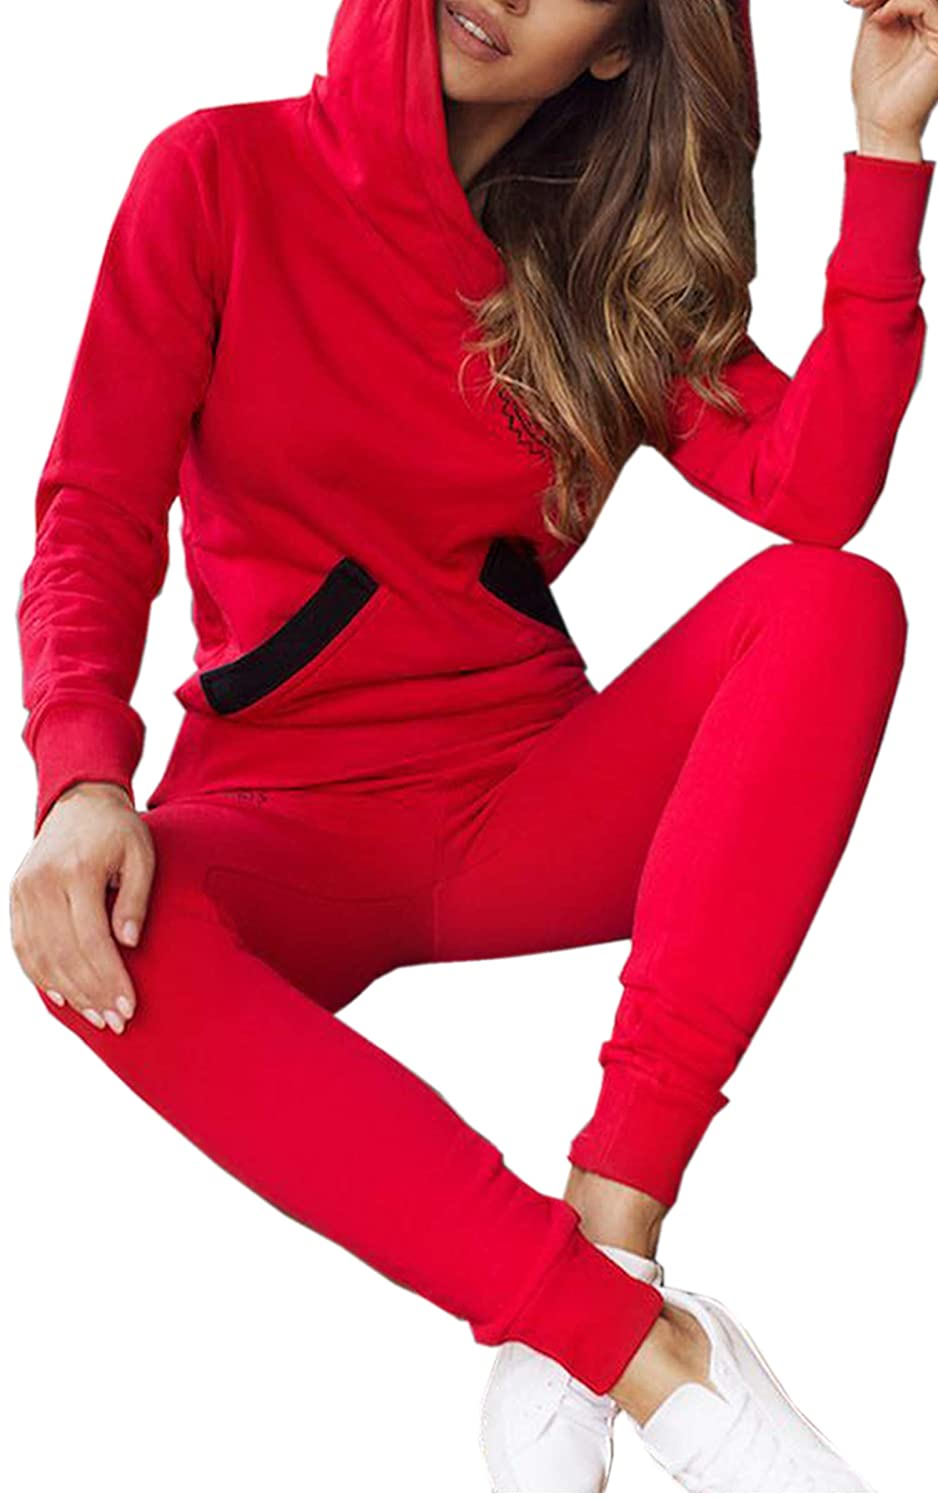 Angashion Women's Two Pieces Casual Hooded Pullover Outfits Long Sleeve Top and Pants Tracksuit Set with Pockets CT718